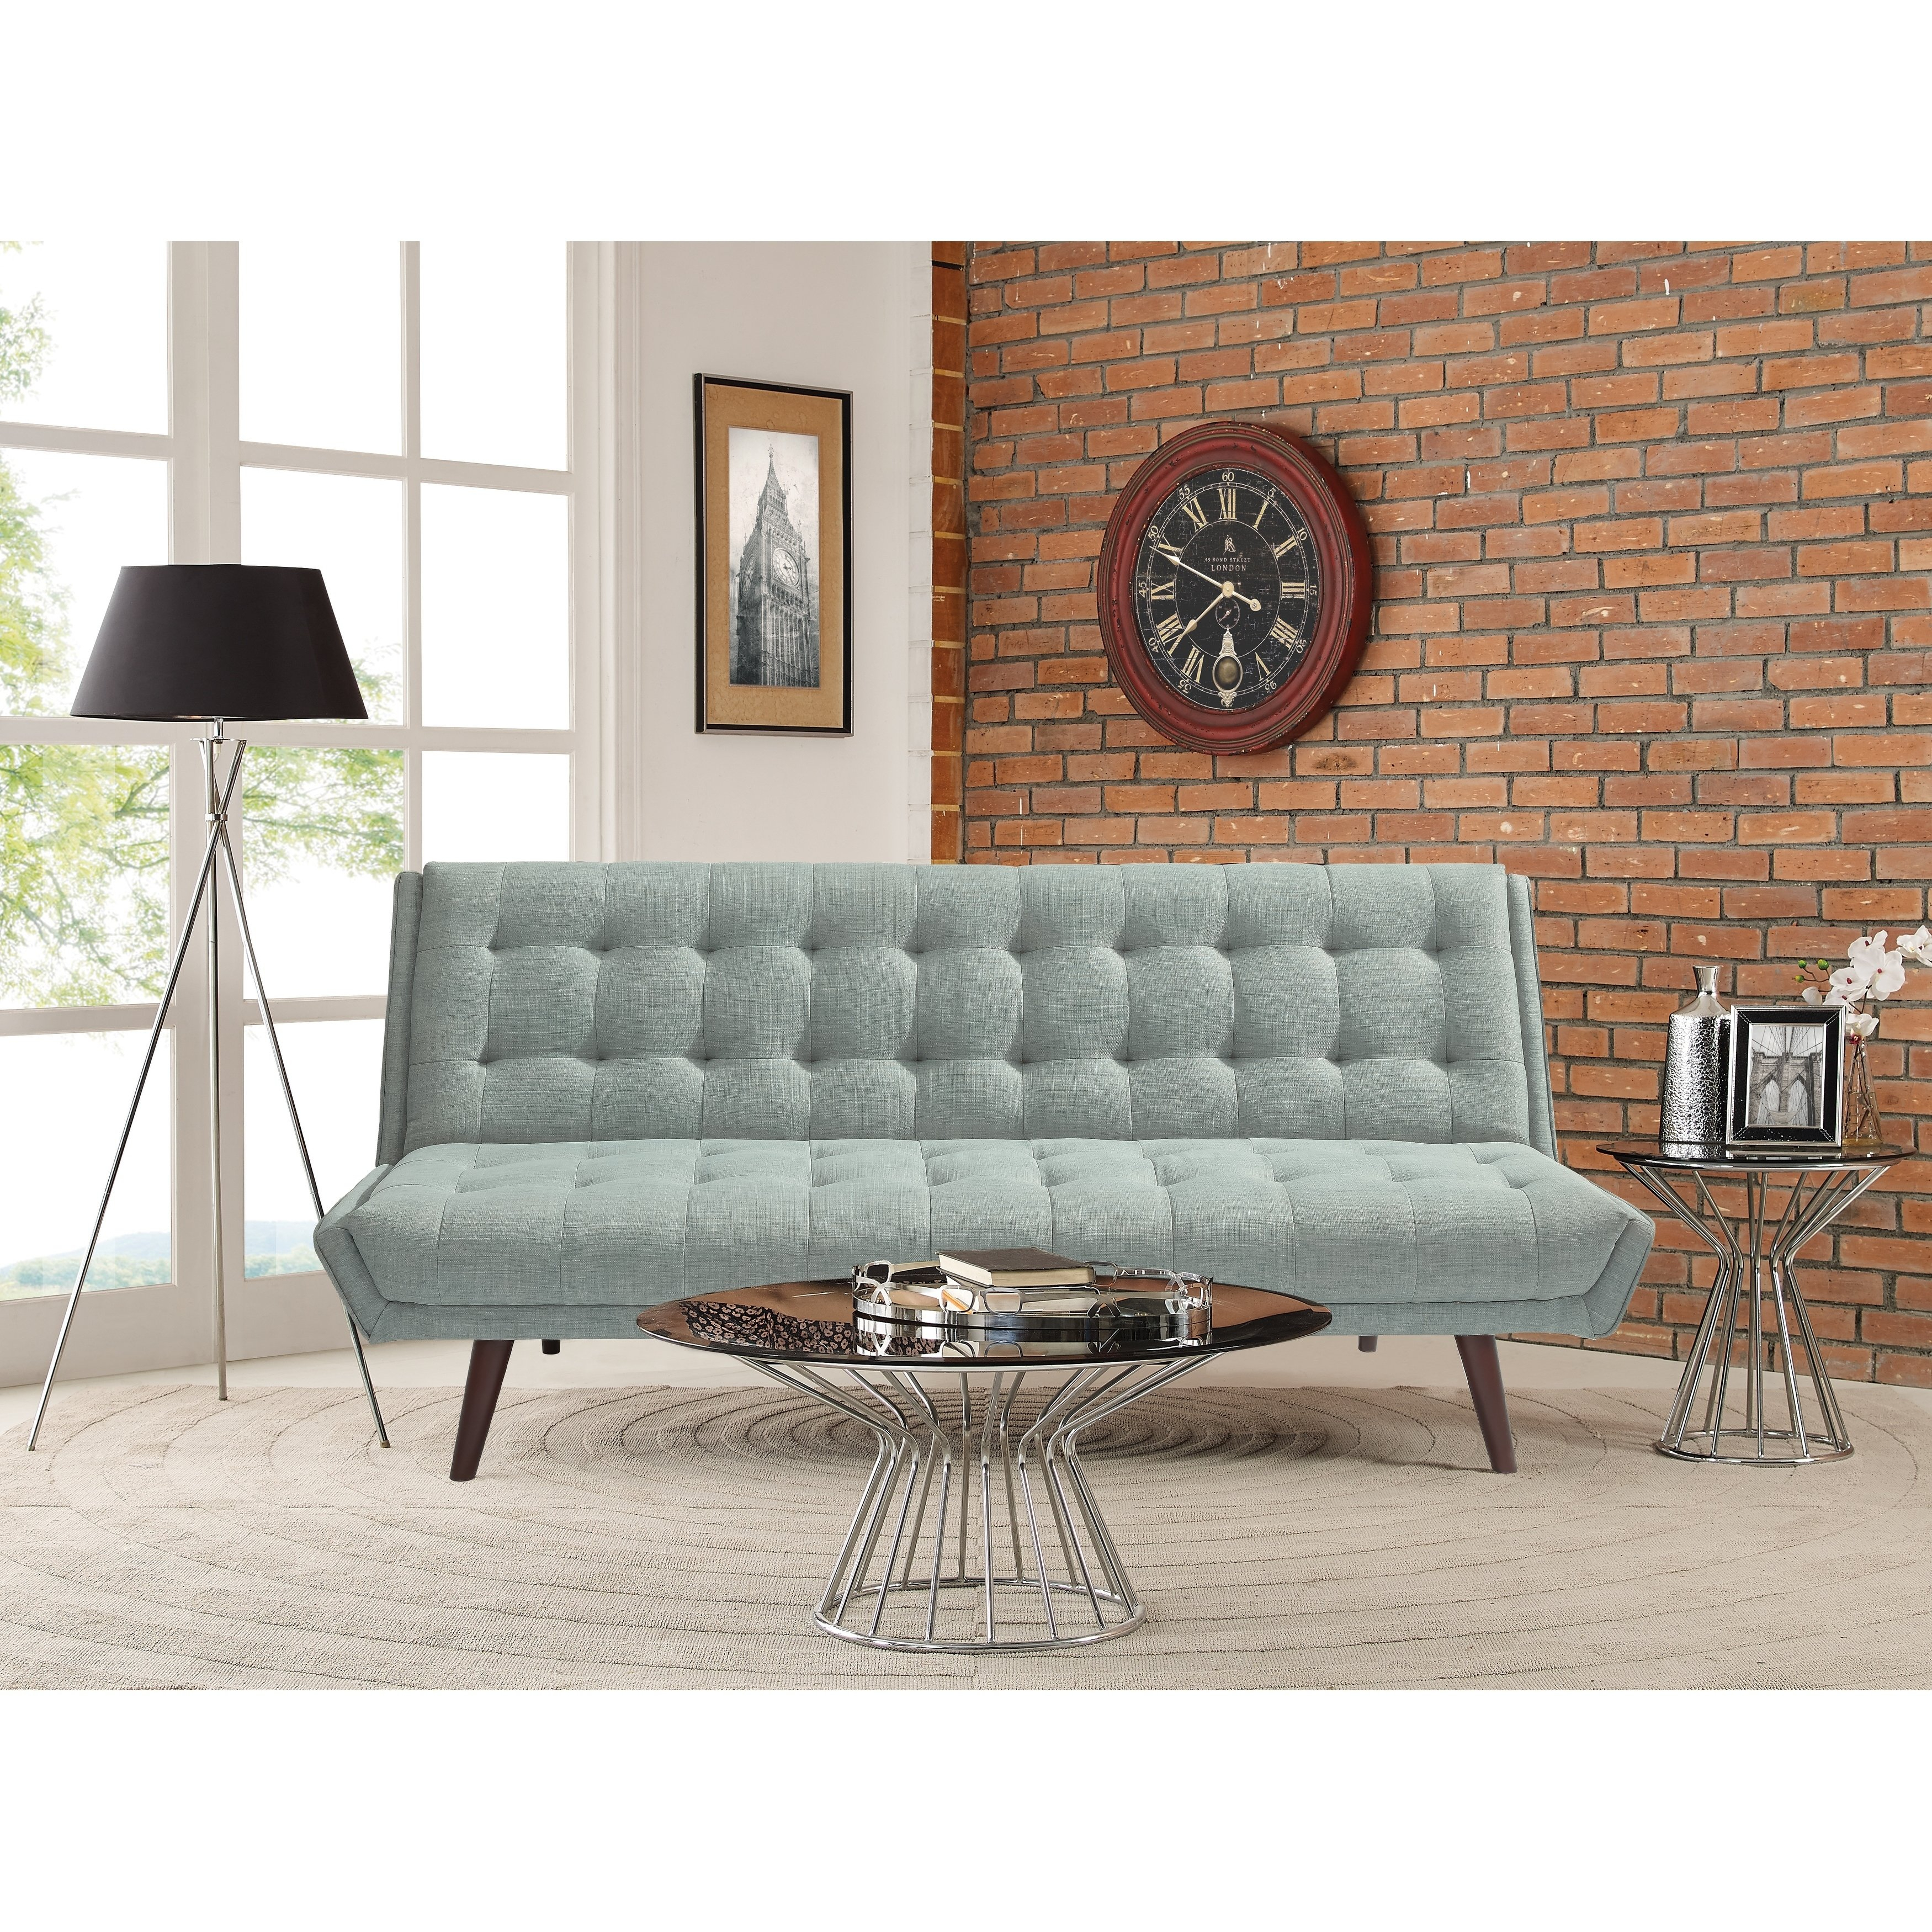 Shop Relax A Lounger Landry Convertible Sofa – Free Shipping Today For Landry Sofa Chairs (Image 20 of 20)